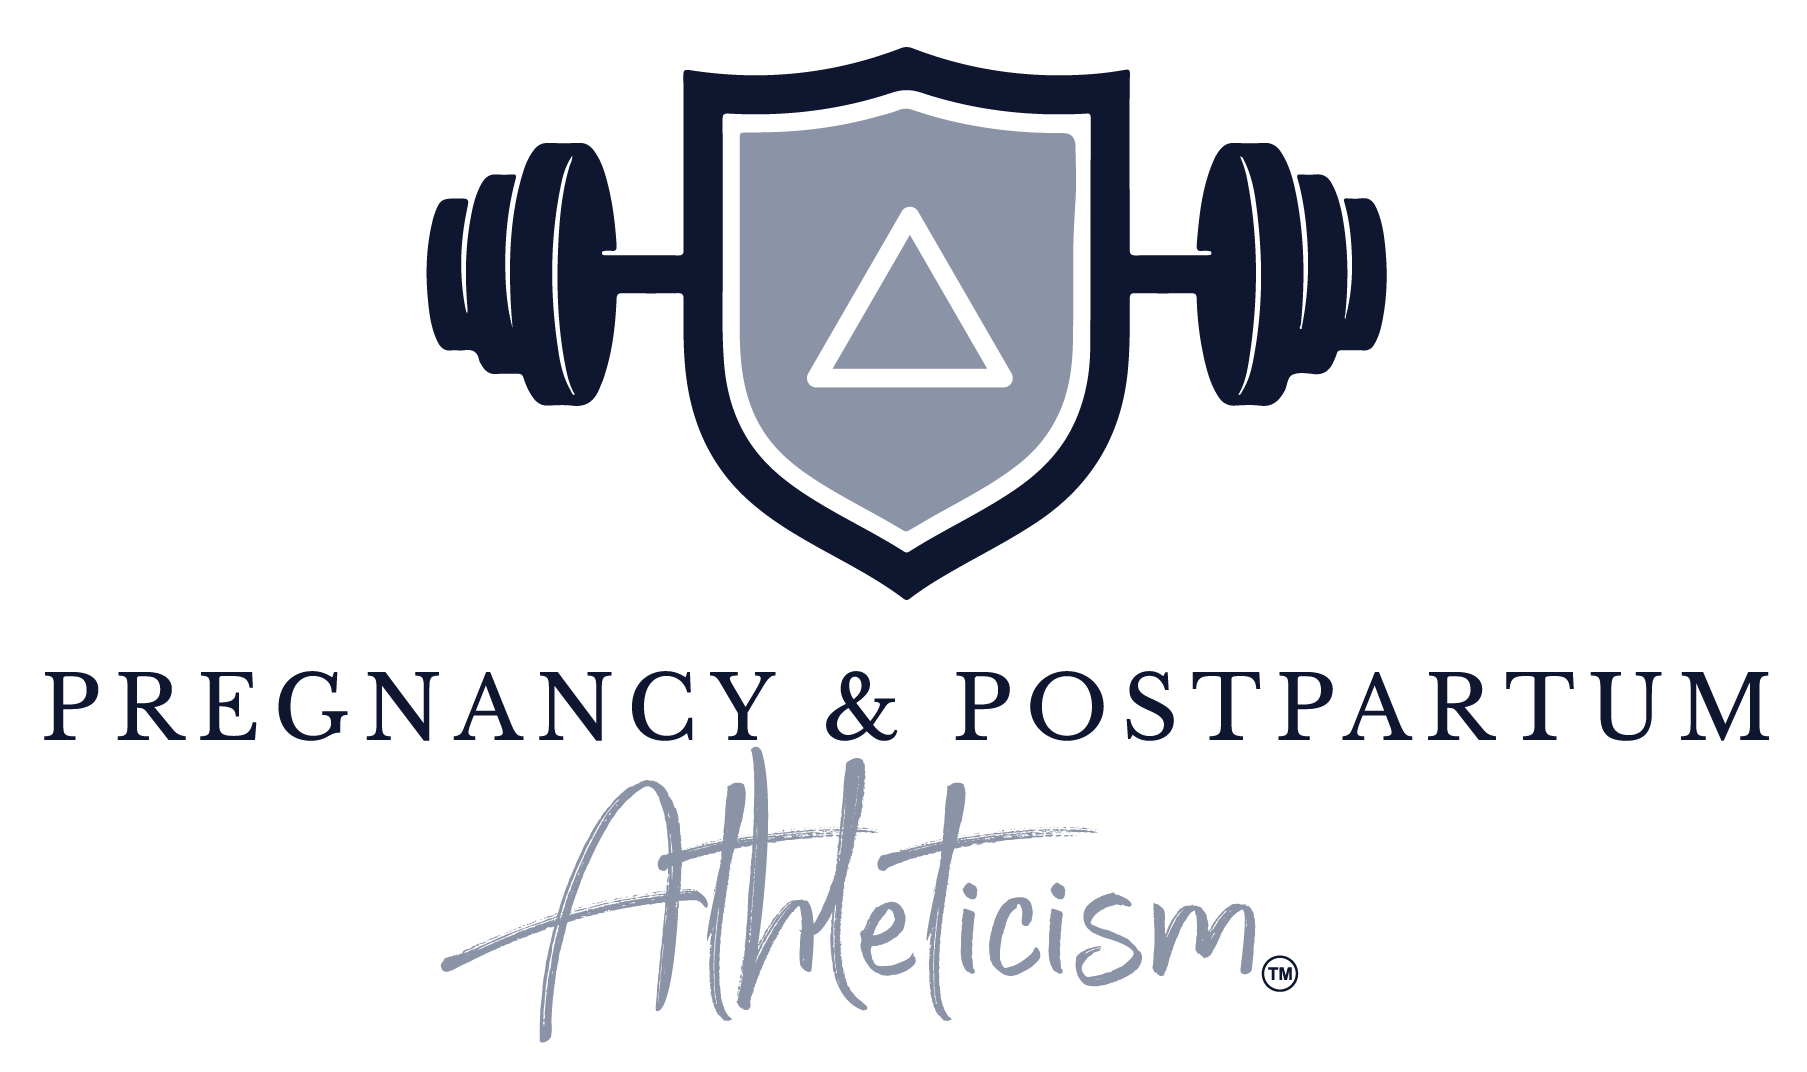 feace34ac864b Pregnancy & Postpartum Athleticism 2.0 is an online, self-paced course for  coaches, trainers, and other fitness industry professionals.